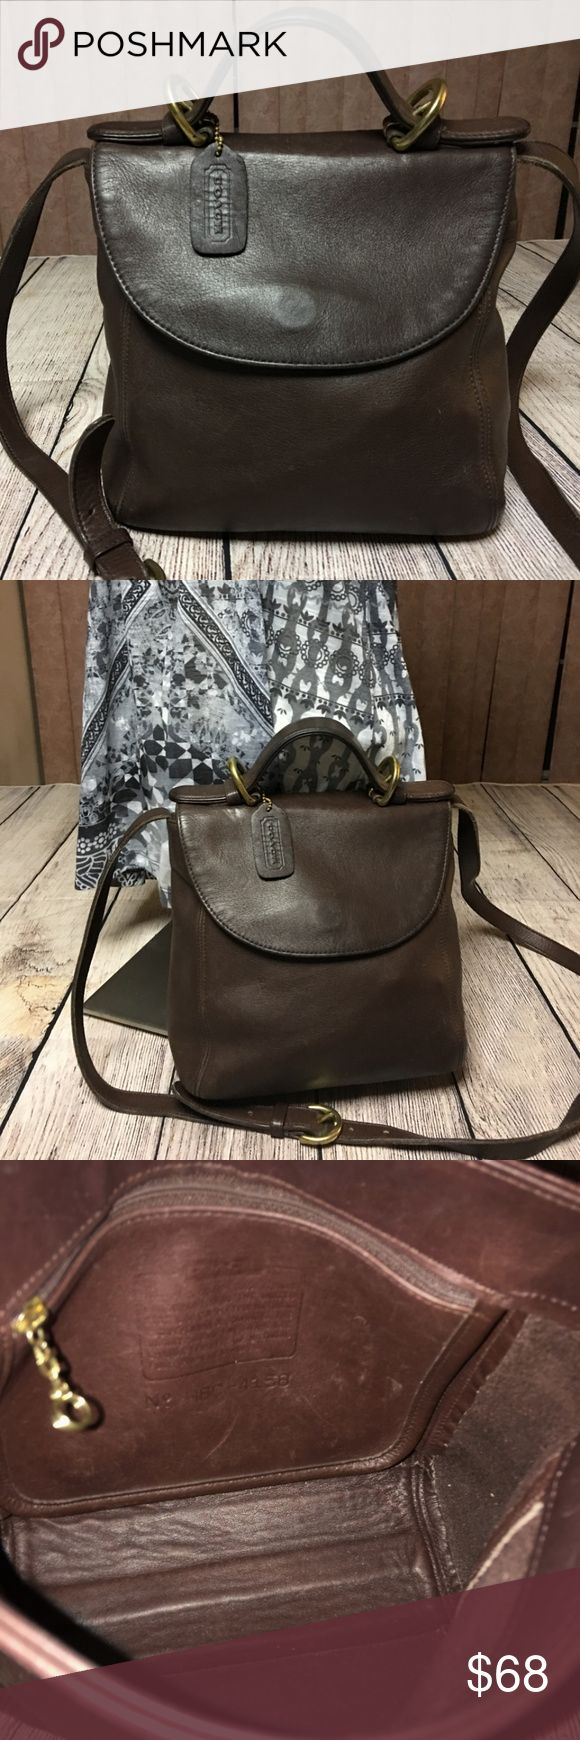 "Coach Vintage SoHo Top Handle Flap XBody 4158 This great bag is made from supple rich brown leather with brass hardware. The djustable strap drops 22-25"" Inside zip pocket with embossed creed and serial number H6C-4158 Made in the USA Excellent condition. Coach Bags Crossbody Bags"